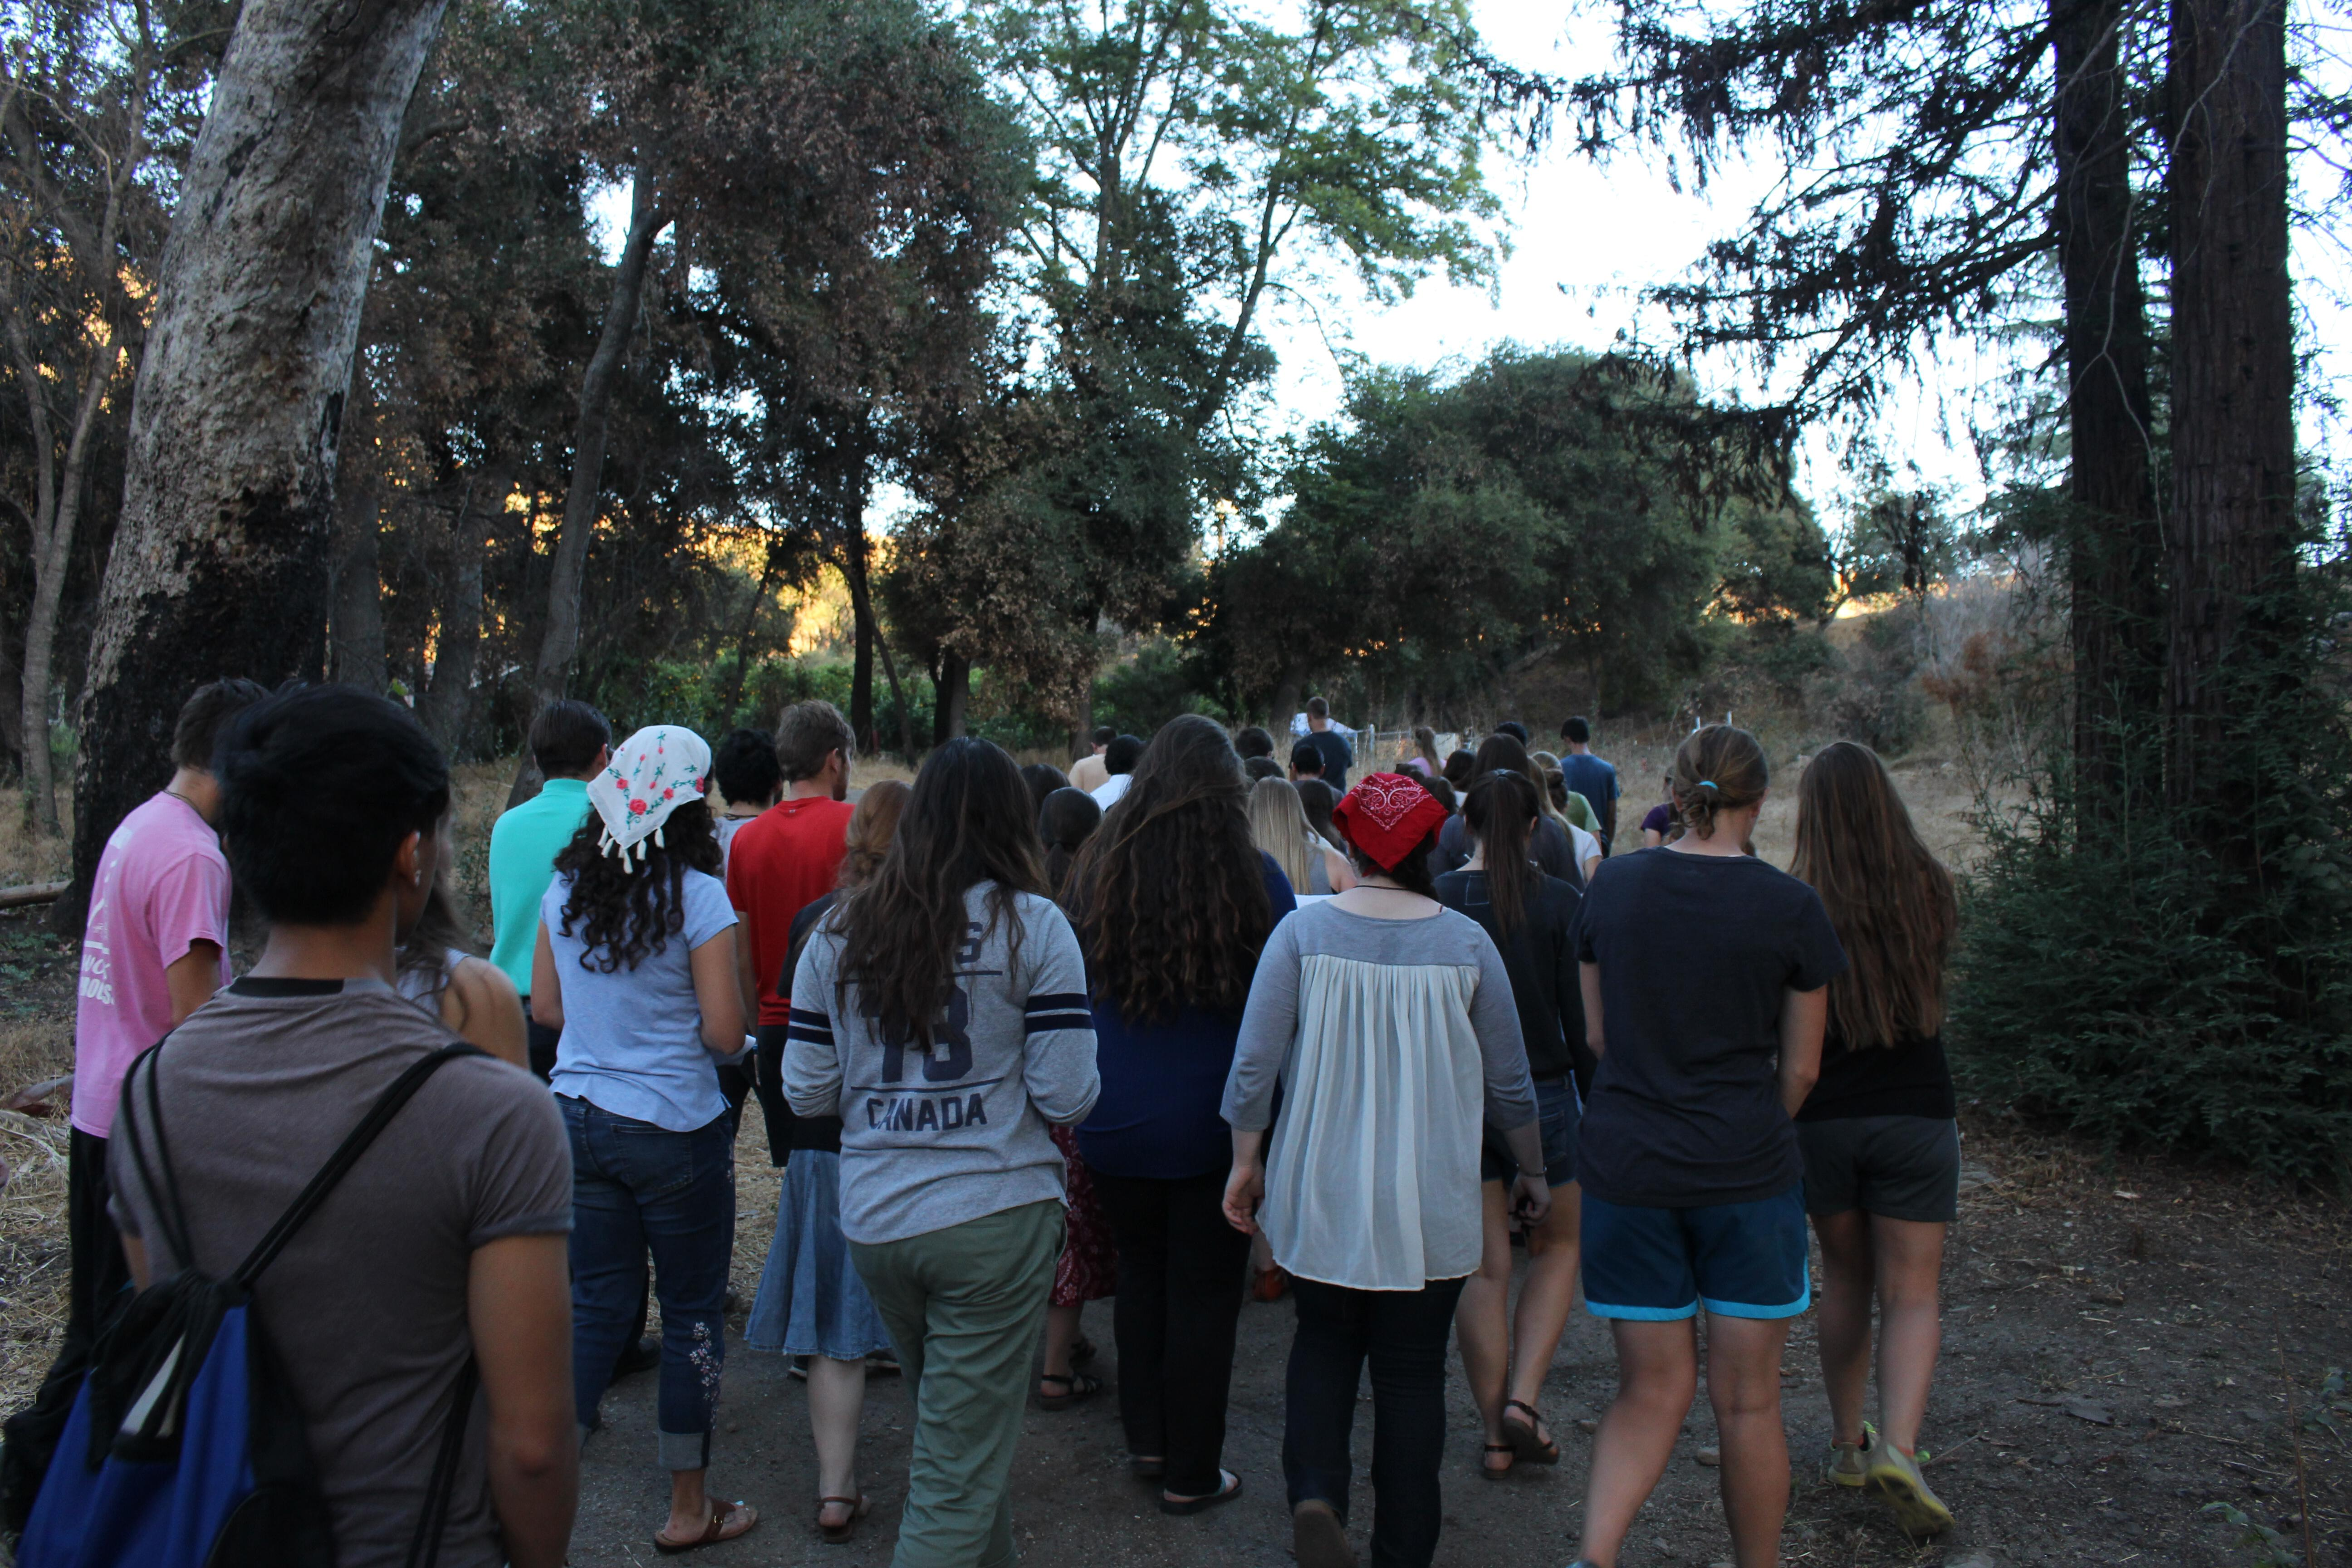 Our Lady of Sorrows Rosary Procession 2018